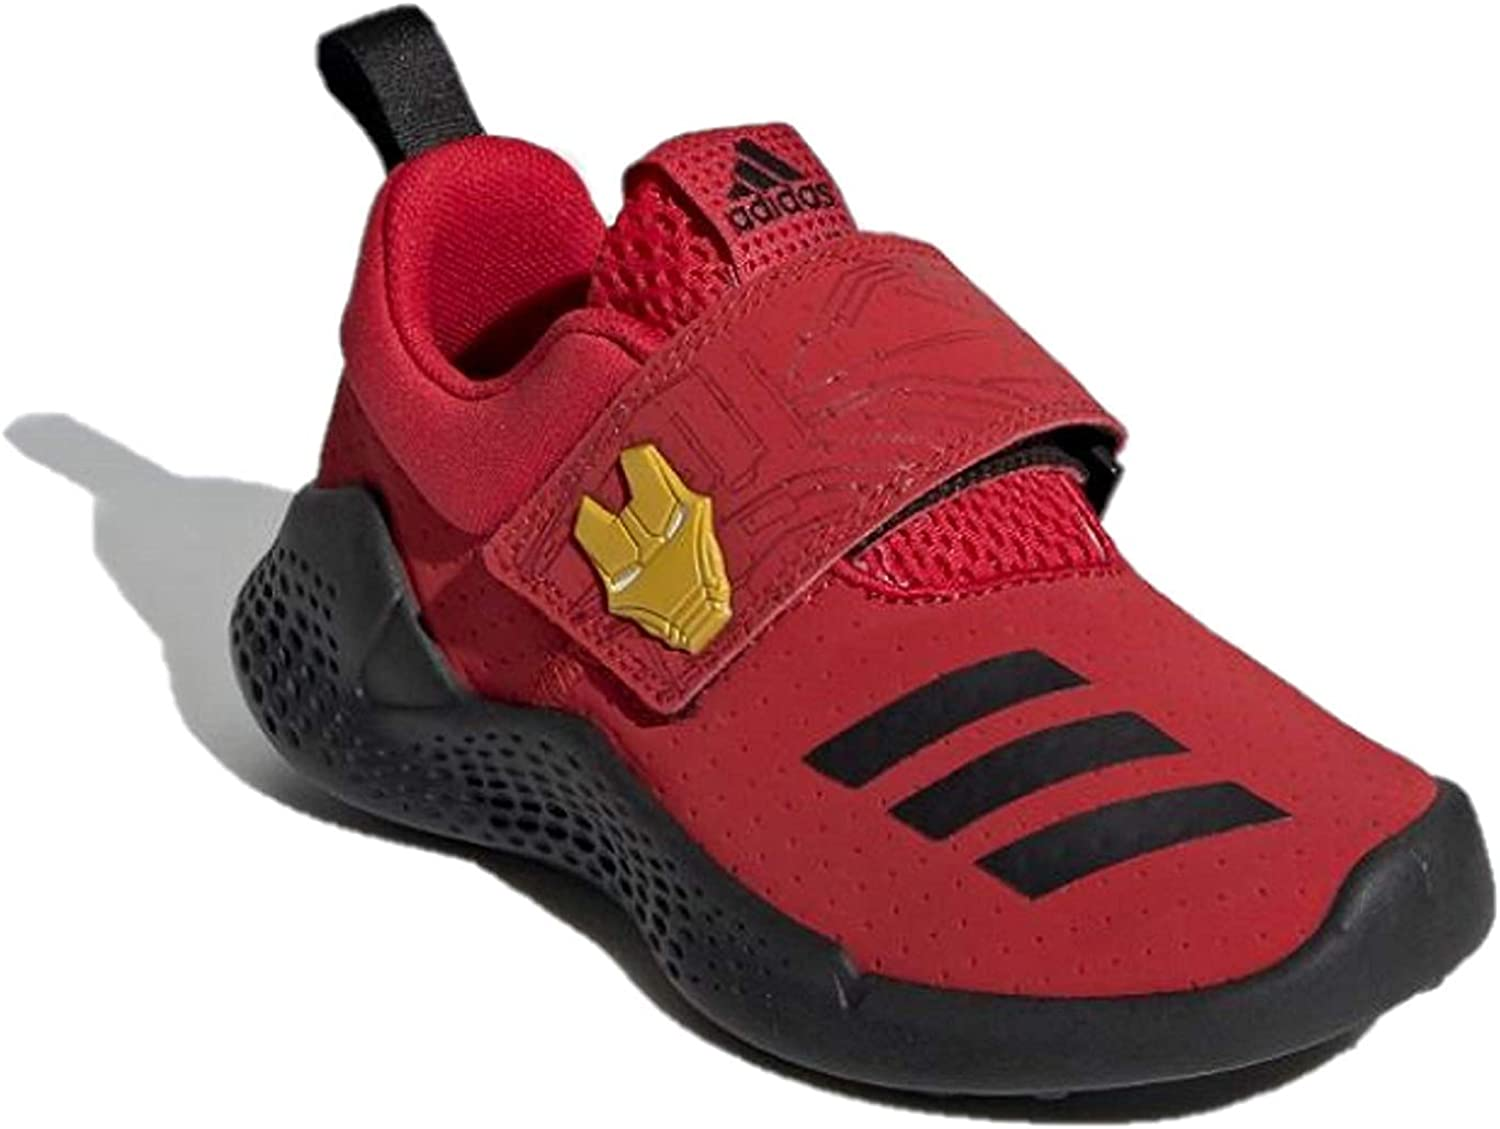 adidas iron man shoes off 51% - www